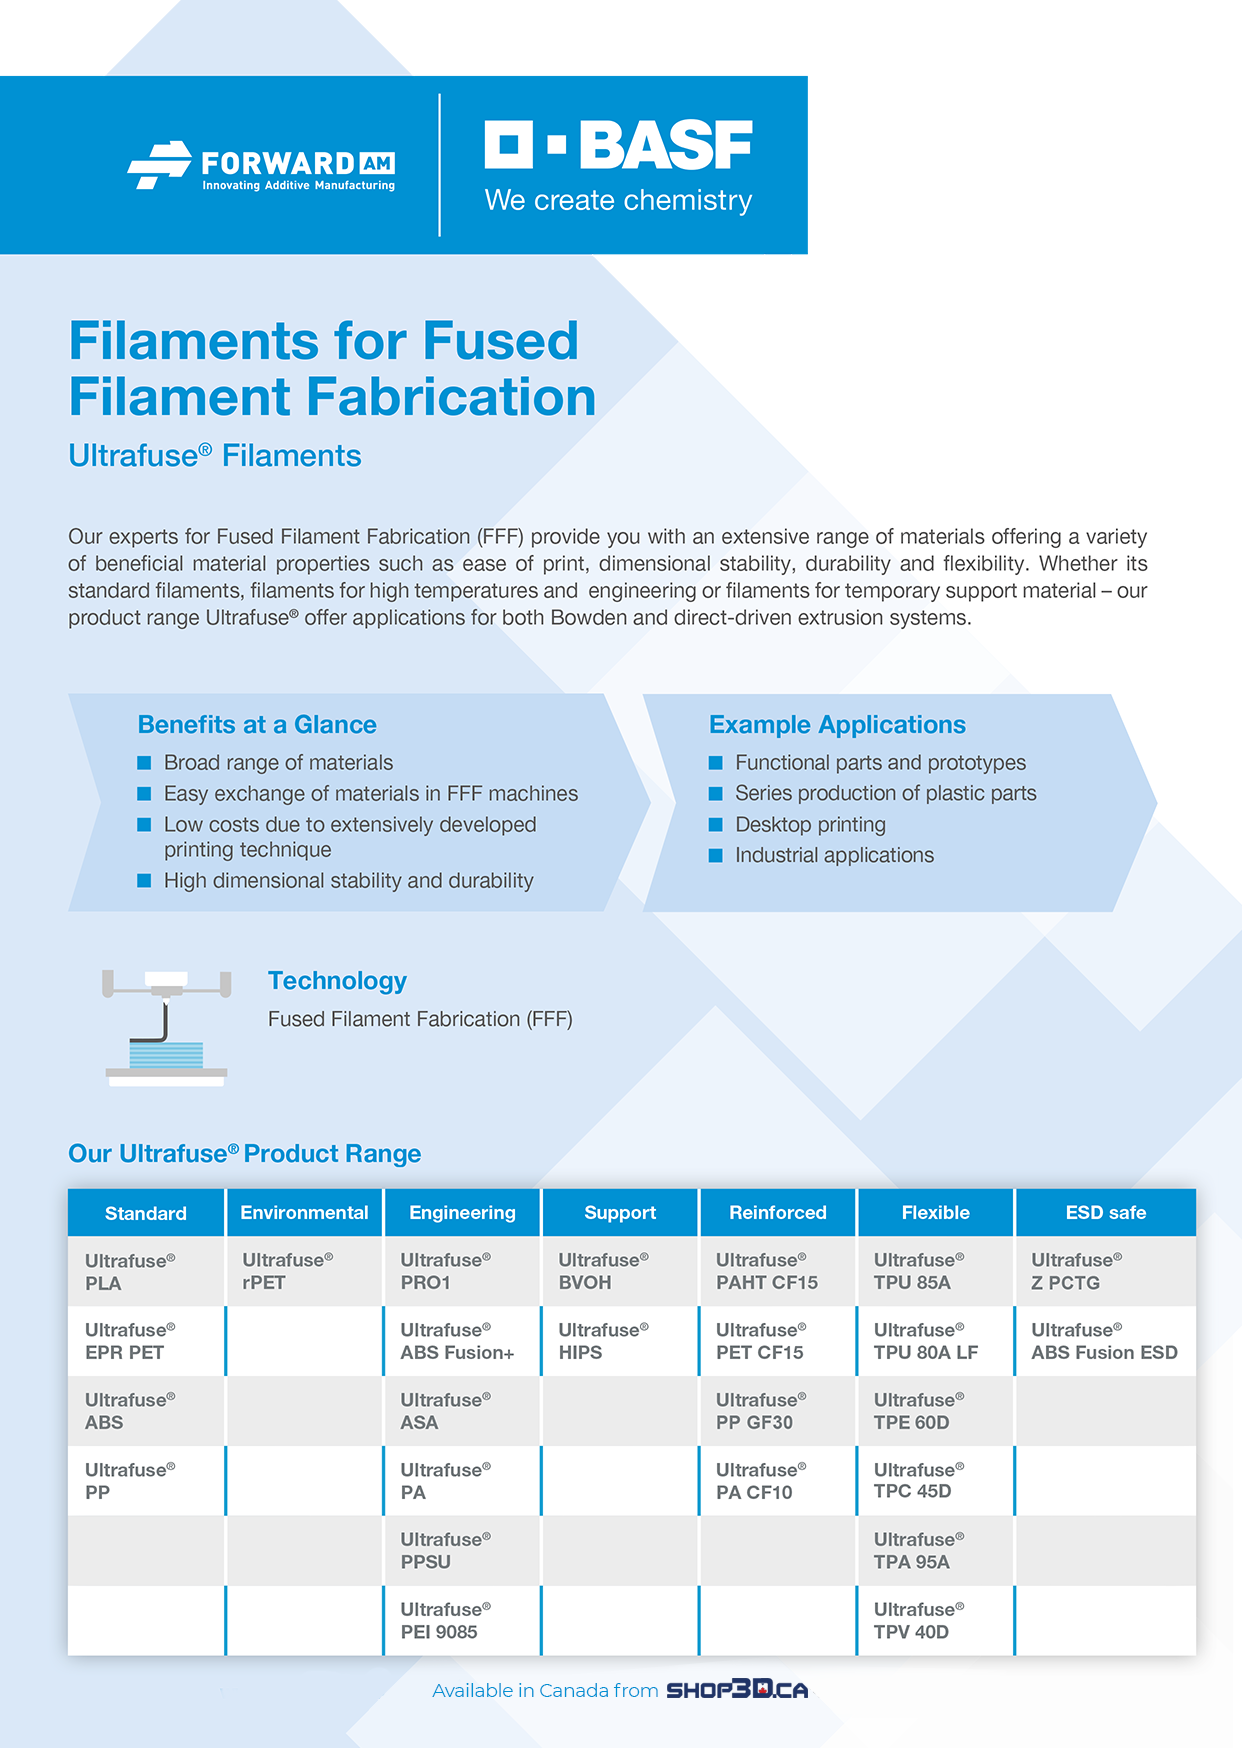 Filament for Fused Filament Fabrication